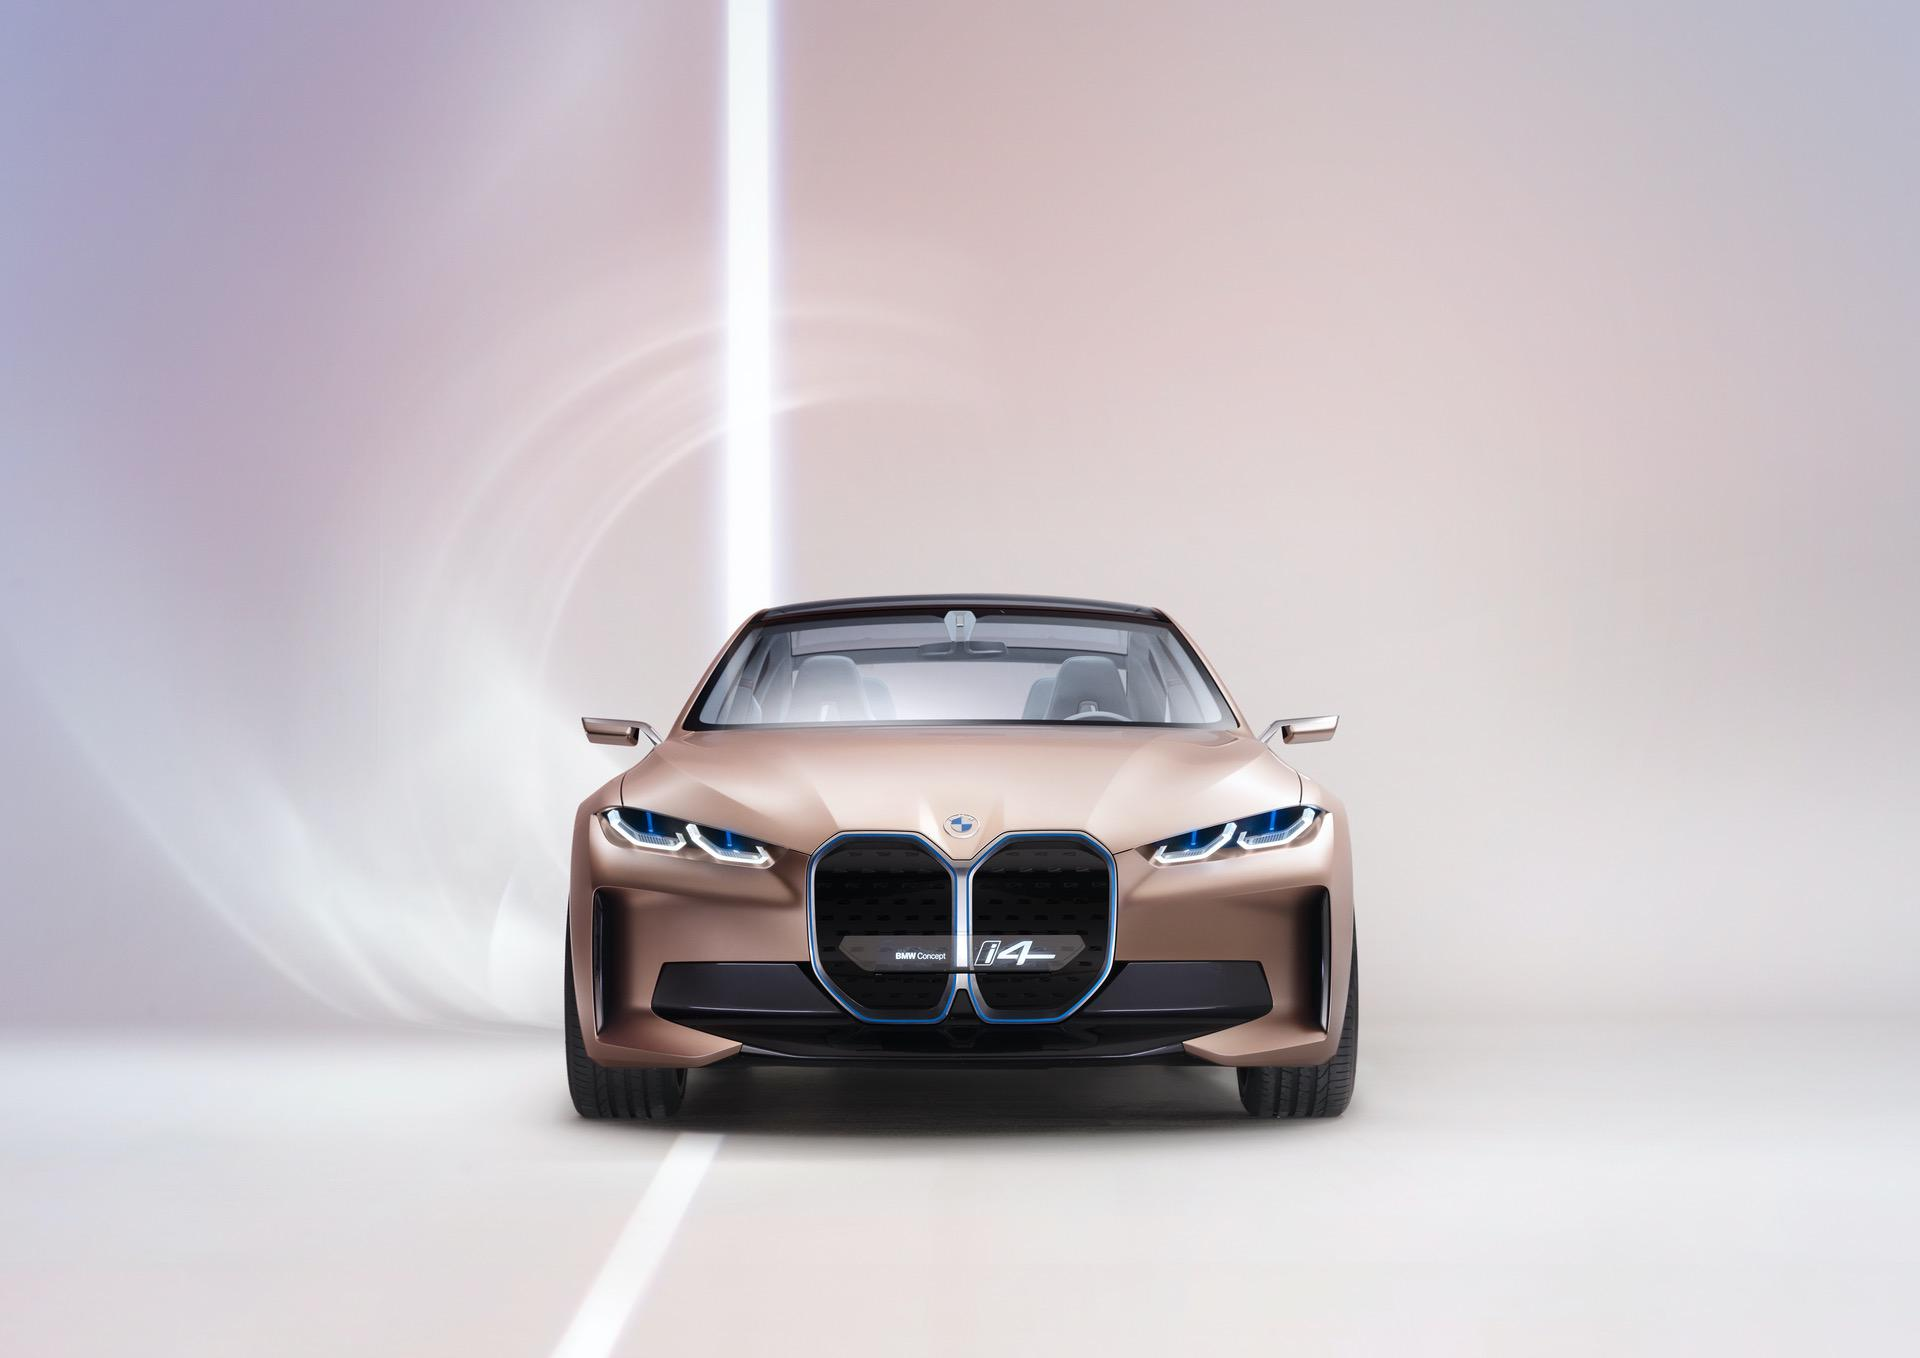 BMW Concept i4 images studio 00